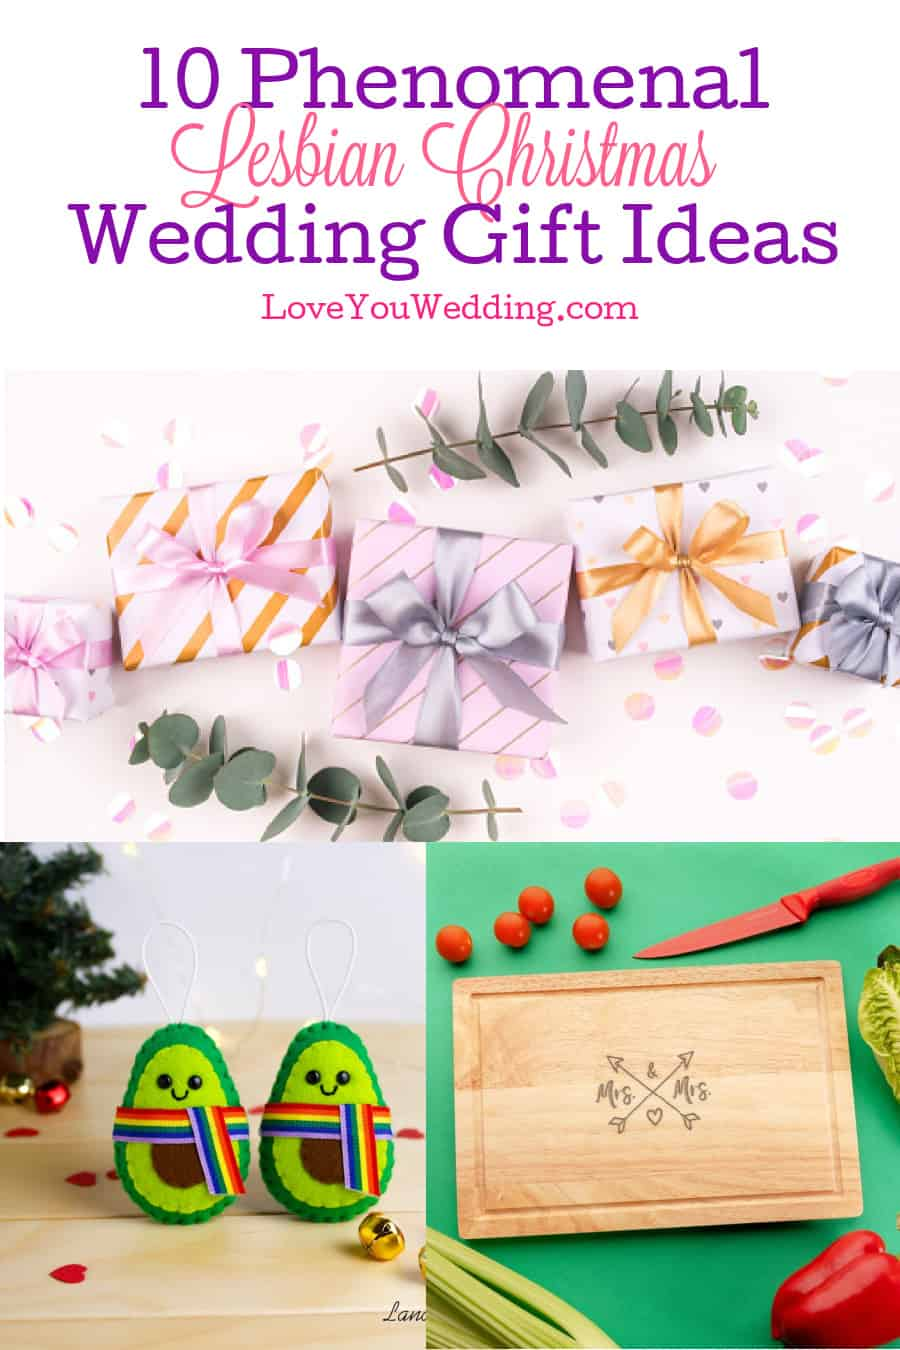 Need some ideas for a few amazing lesbian Christmas wedding gifts? No problem! We rounded up 10 that we adore. Check them out!